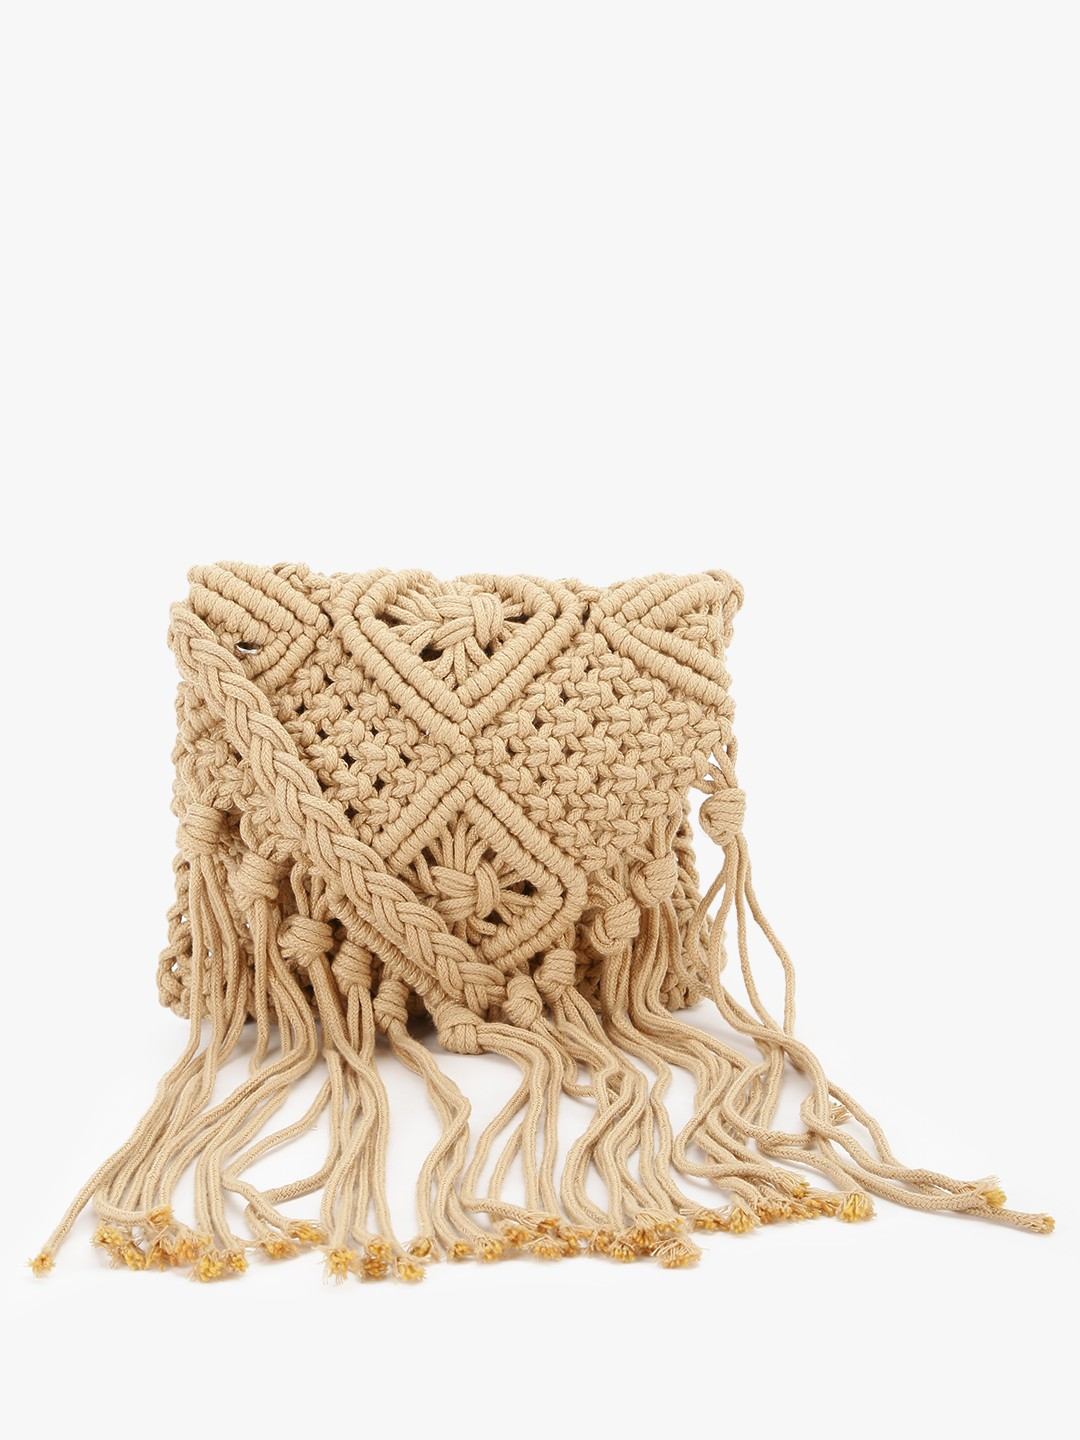 Origami Lily Light Brown Crochet Fringed Sling Bag 1